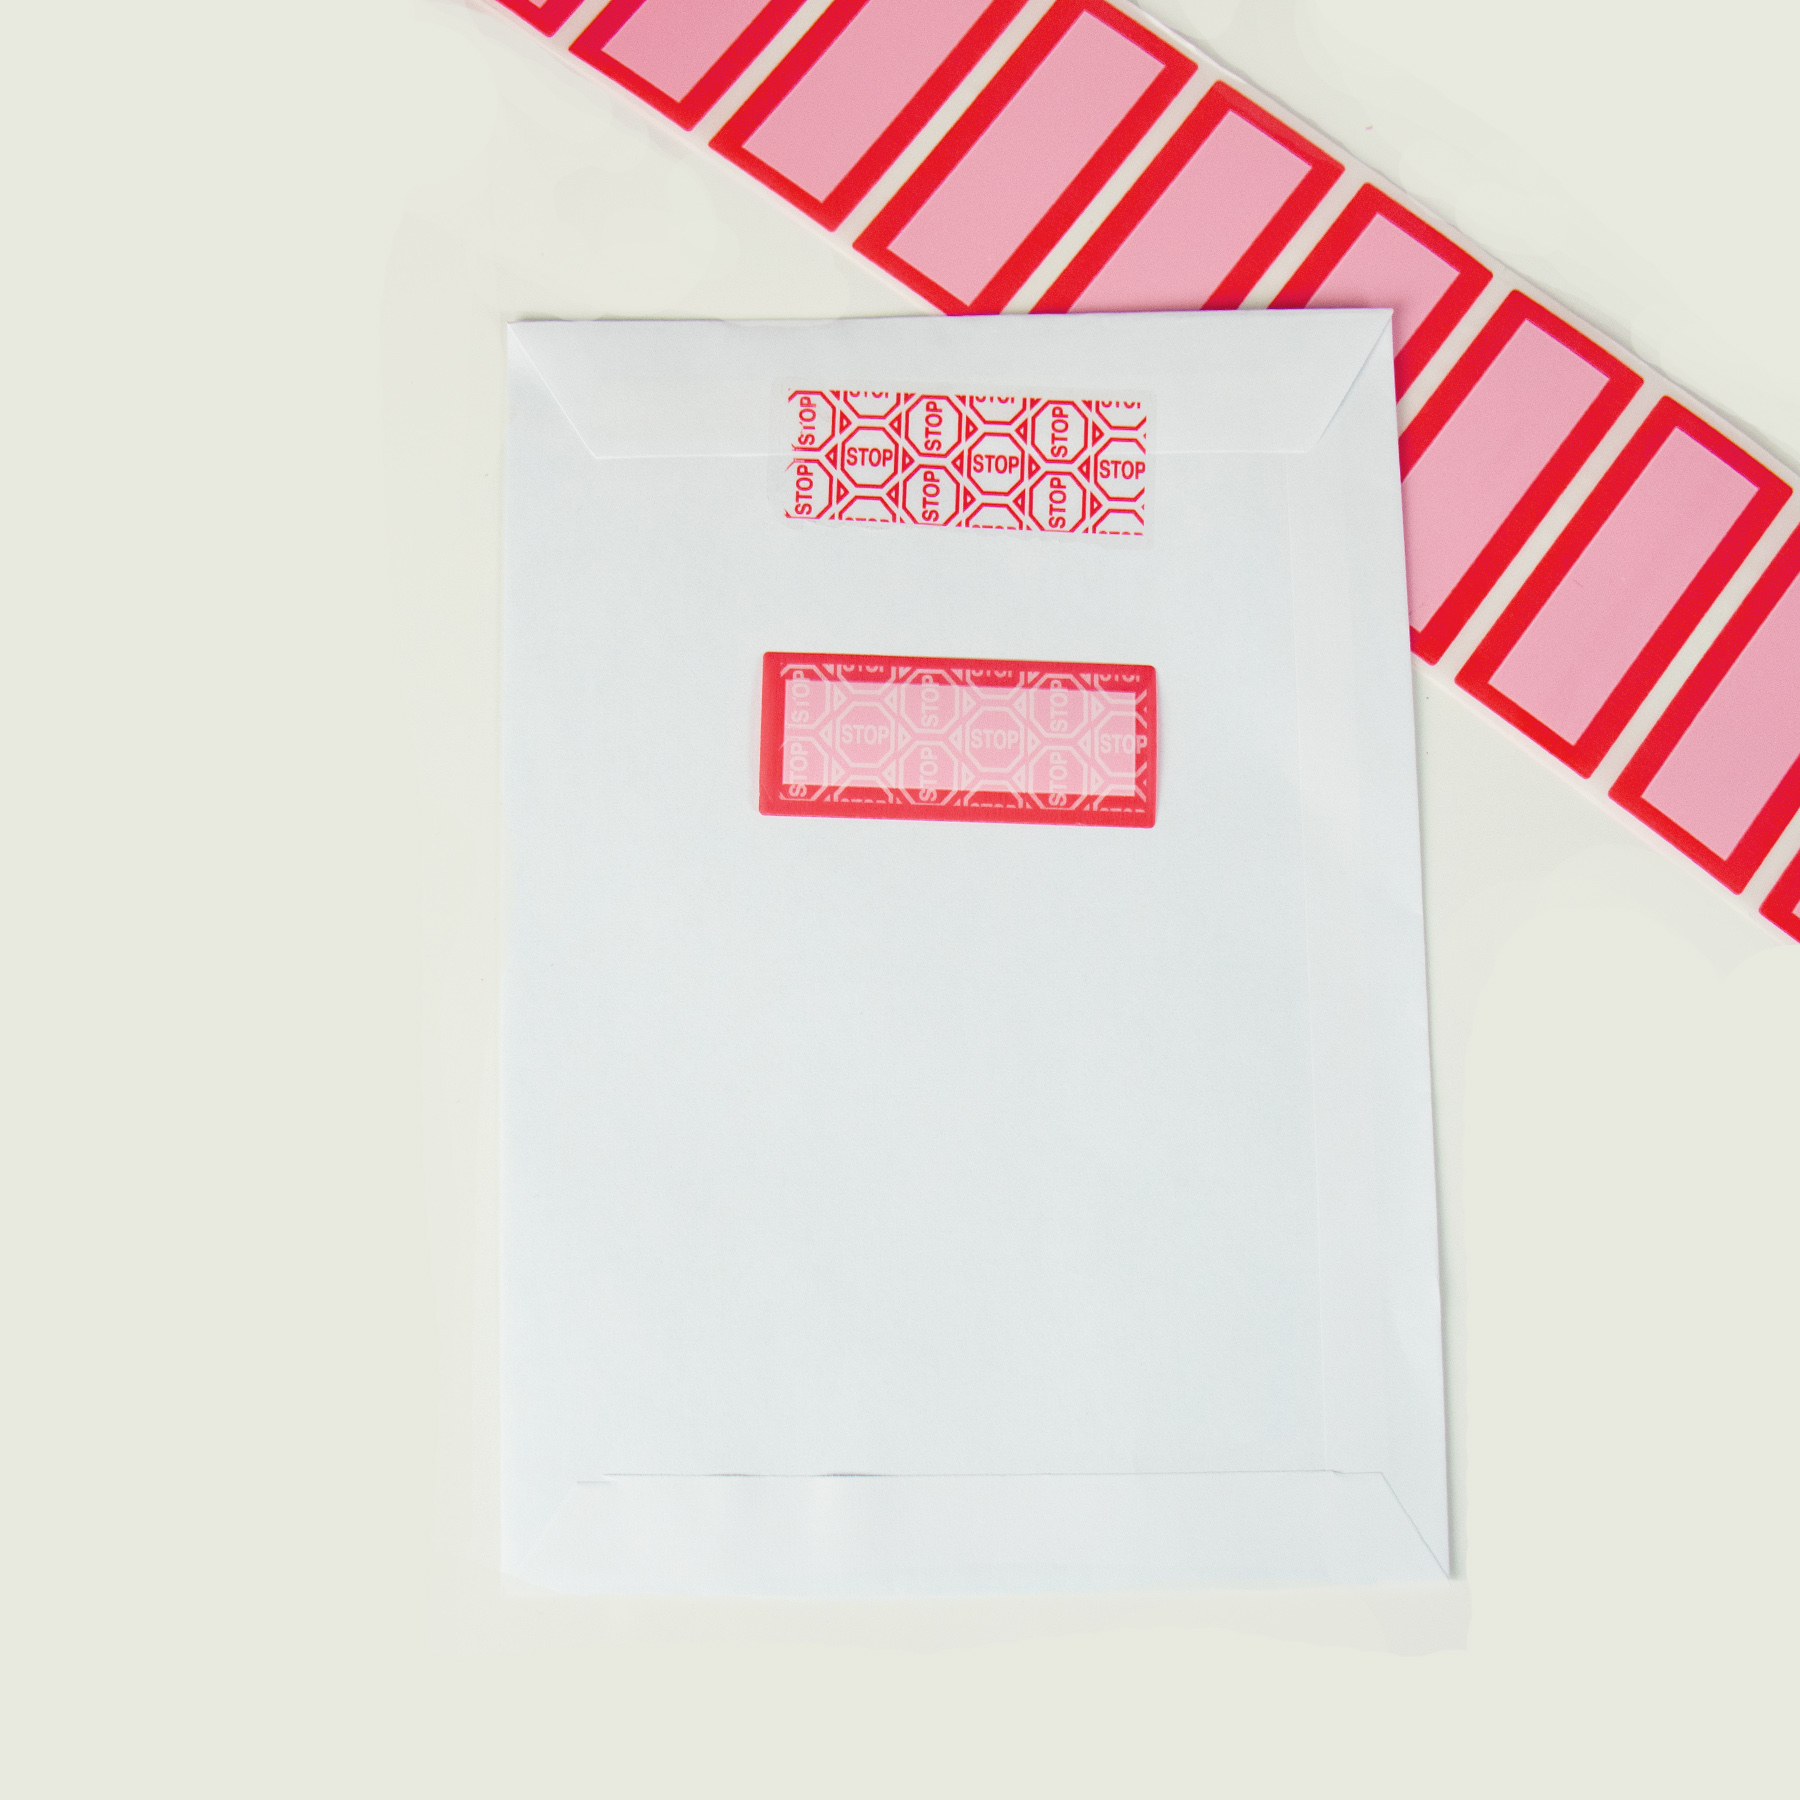 White Envelope with red tamper evident security label voided